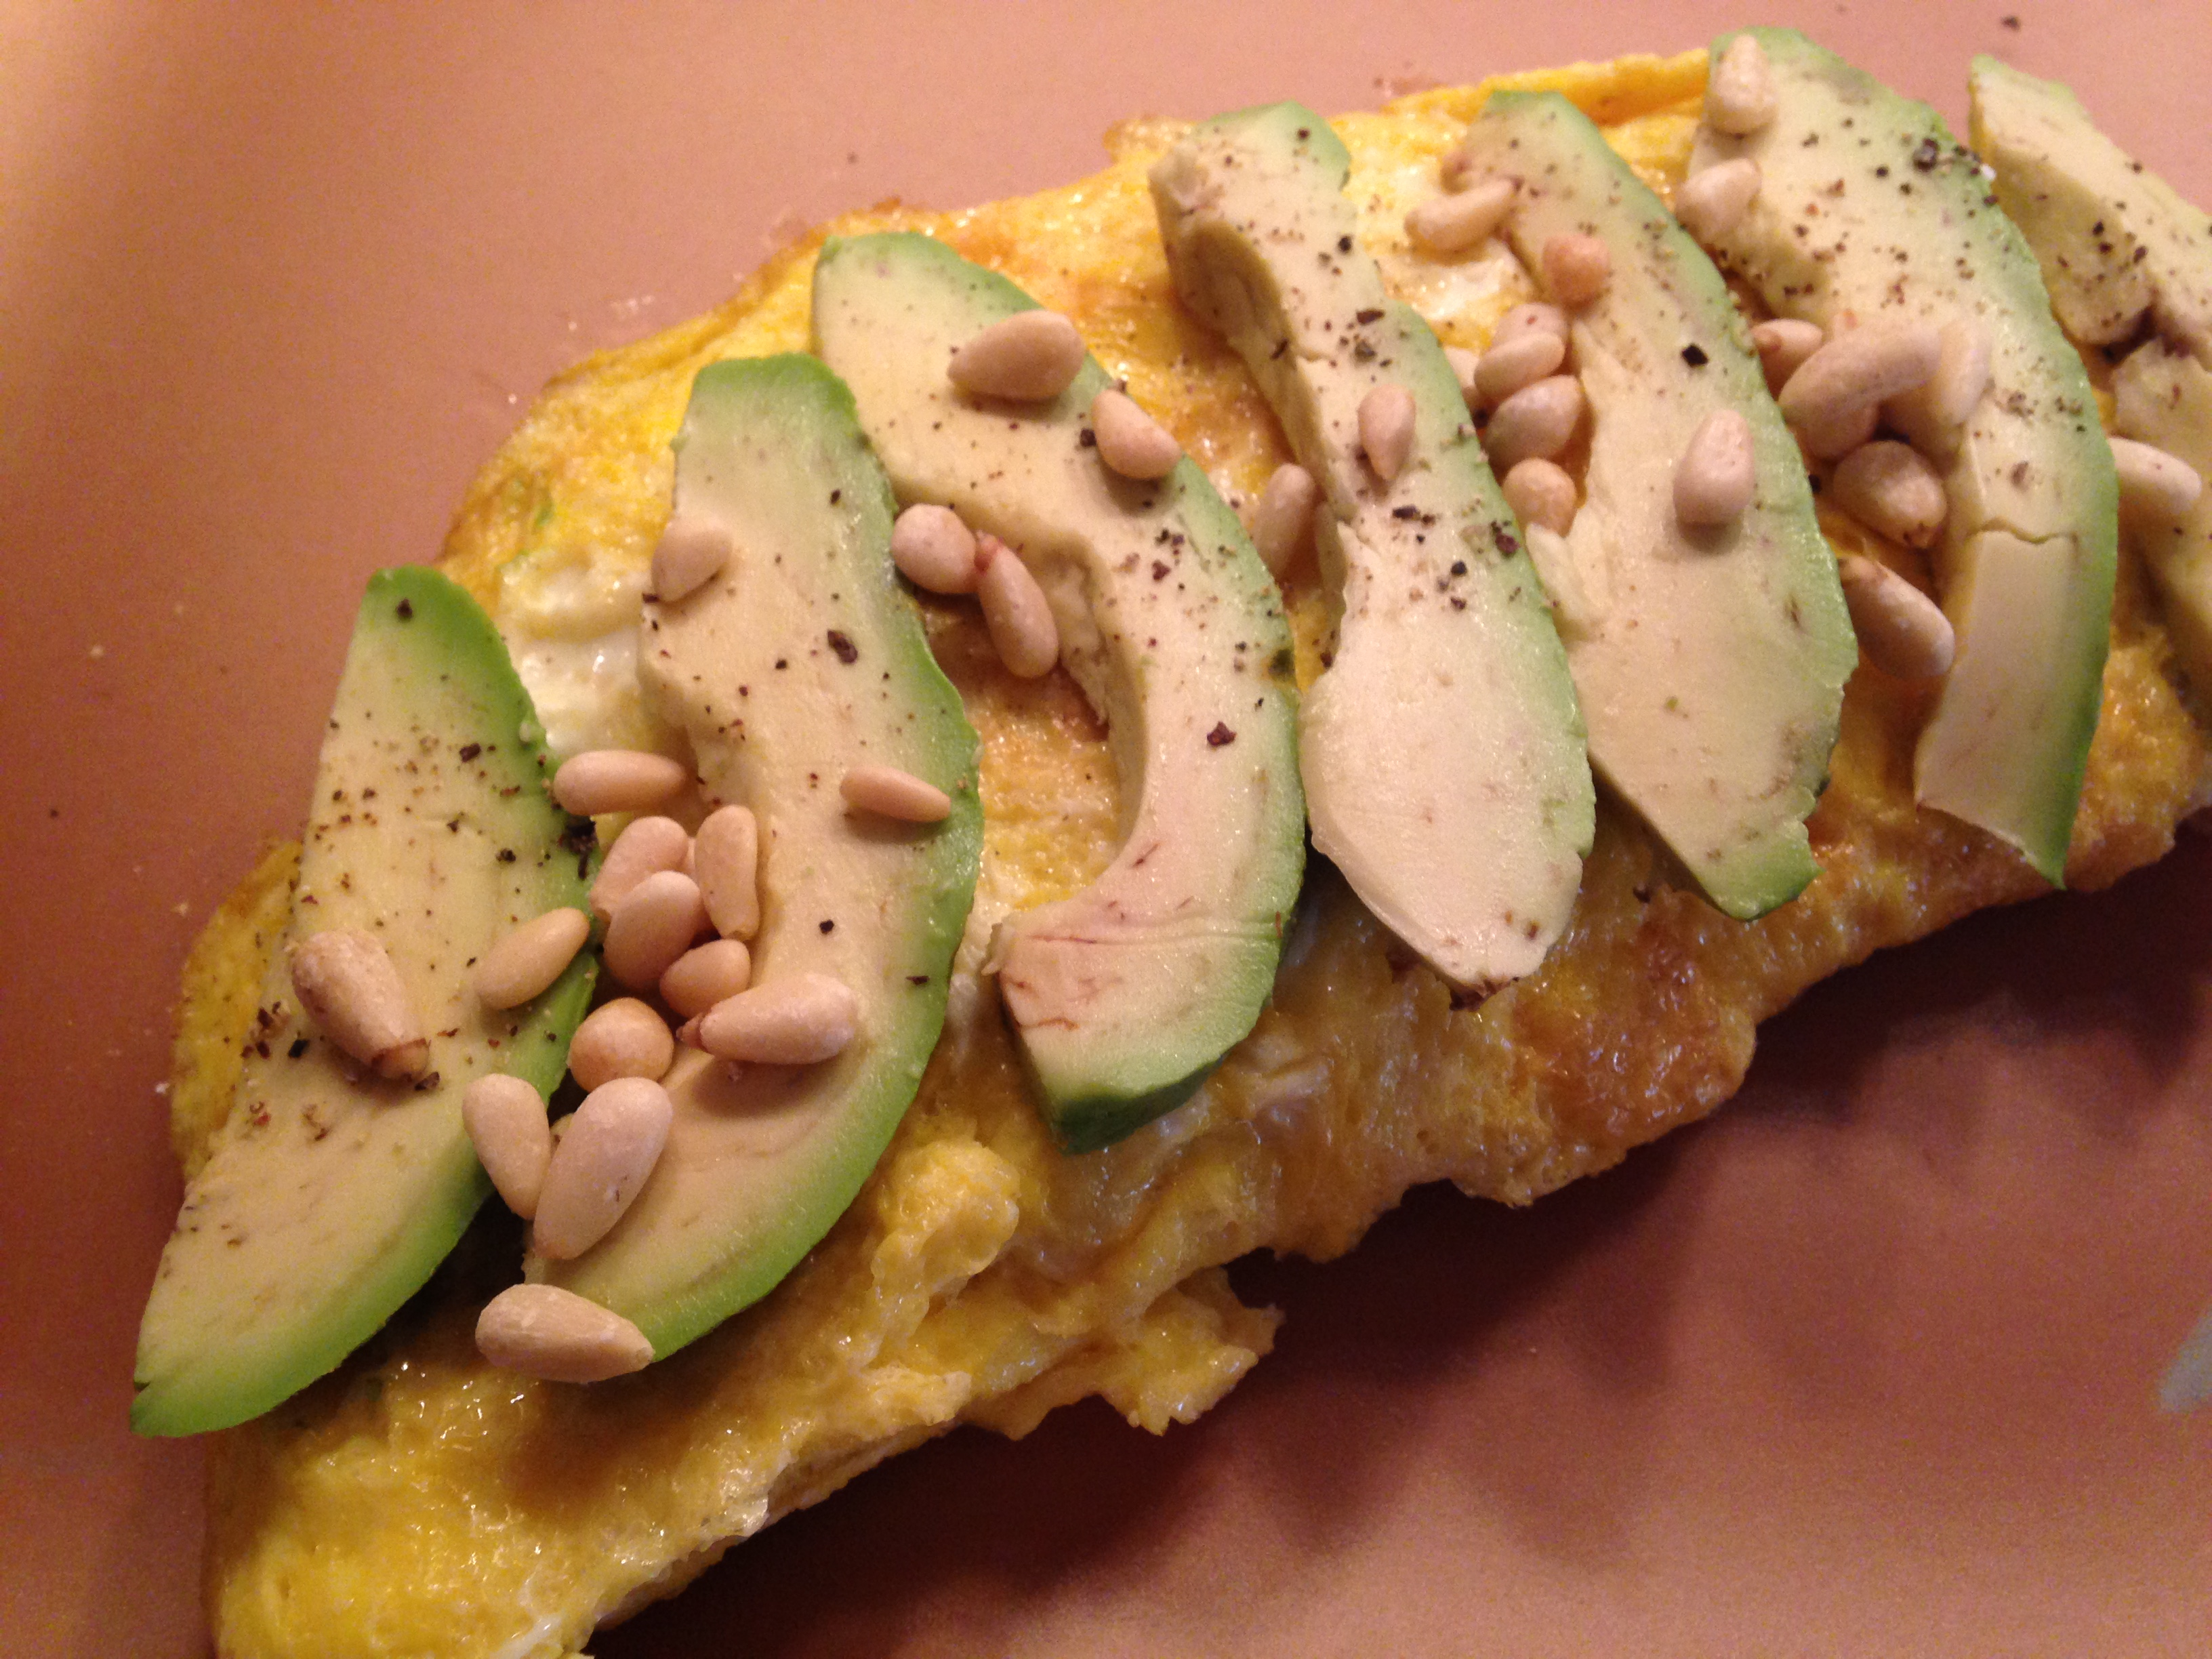 Healthy breakfast omelet with fresh spinach, feta, avocado and pine nuts.